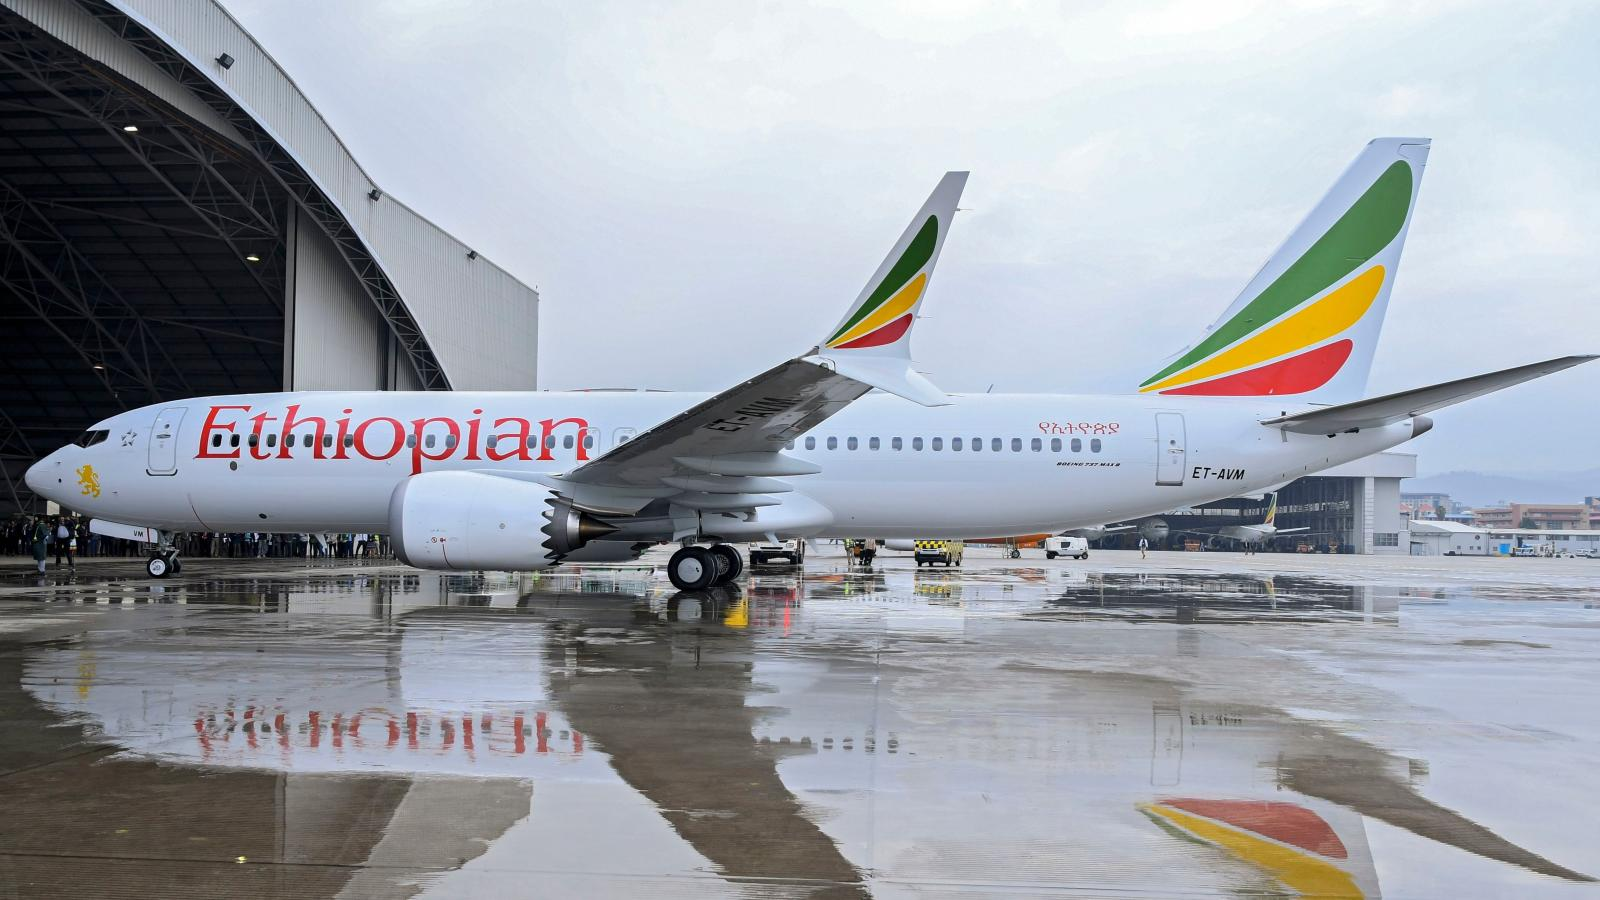 Boeing 737 crash hurts Ethiopian Airlines expansion, investment ...